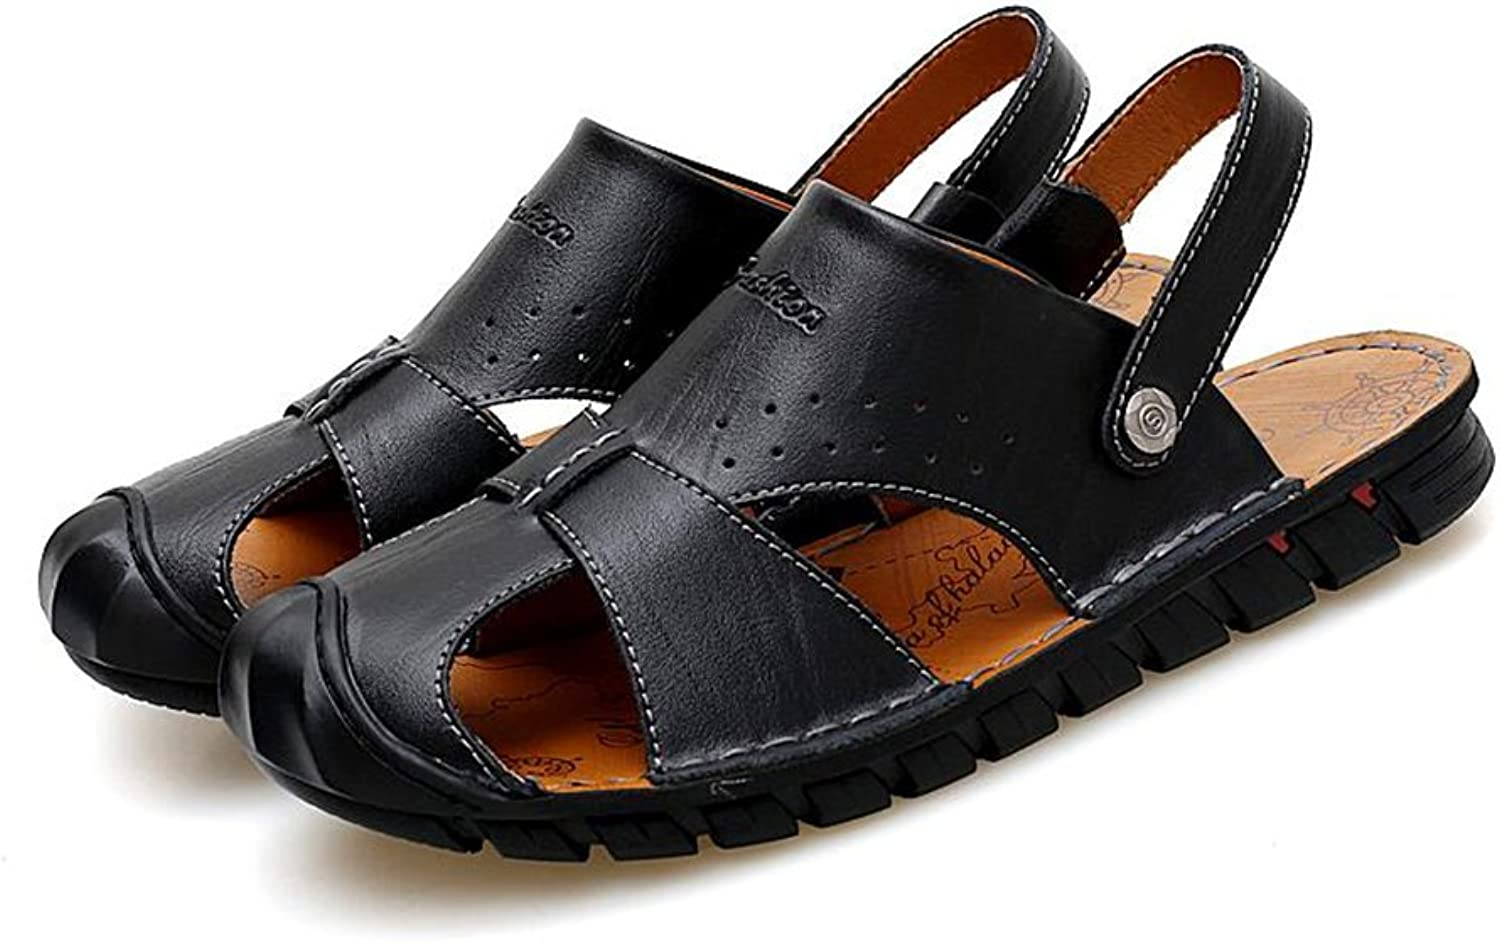 CJC Sandals Fashion Casual Outdoor Men's shoes Summer Walking Leather Athletic Beach Strap Hiking (color   T3, Size   EU43 UK9)